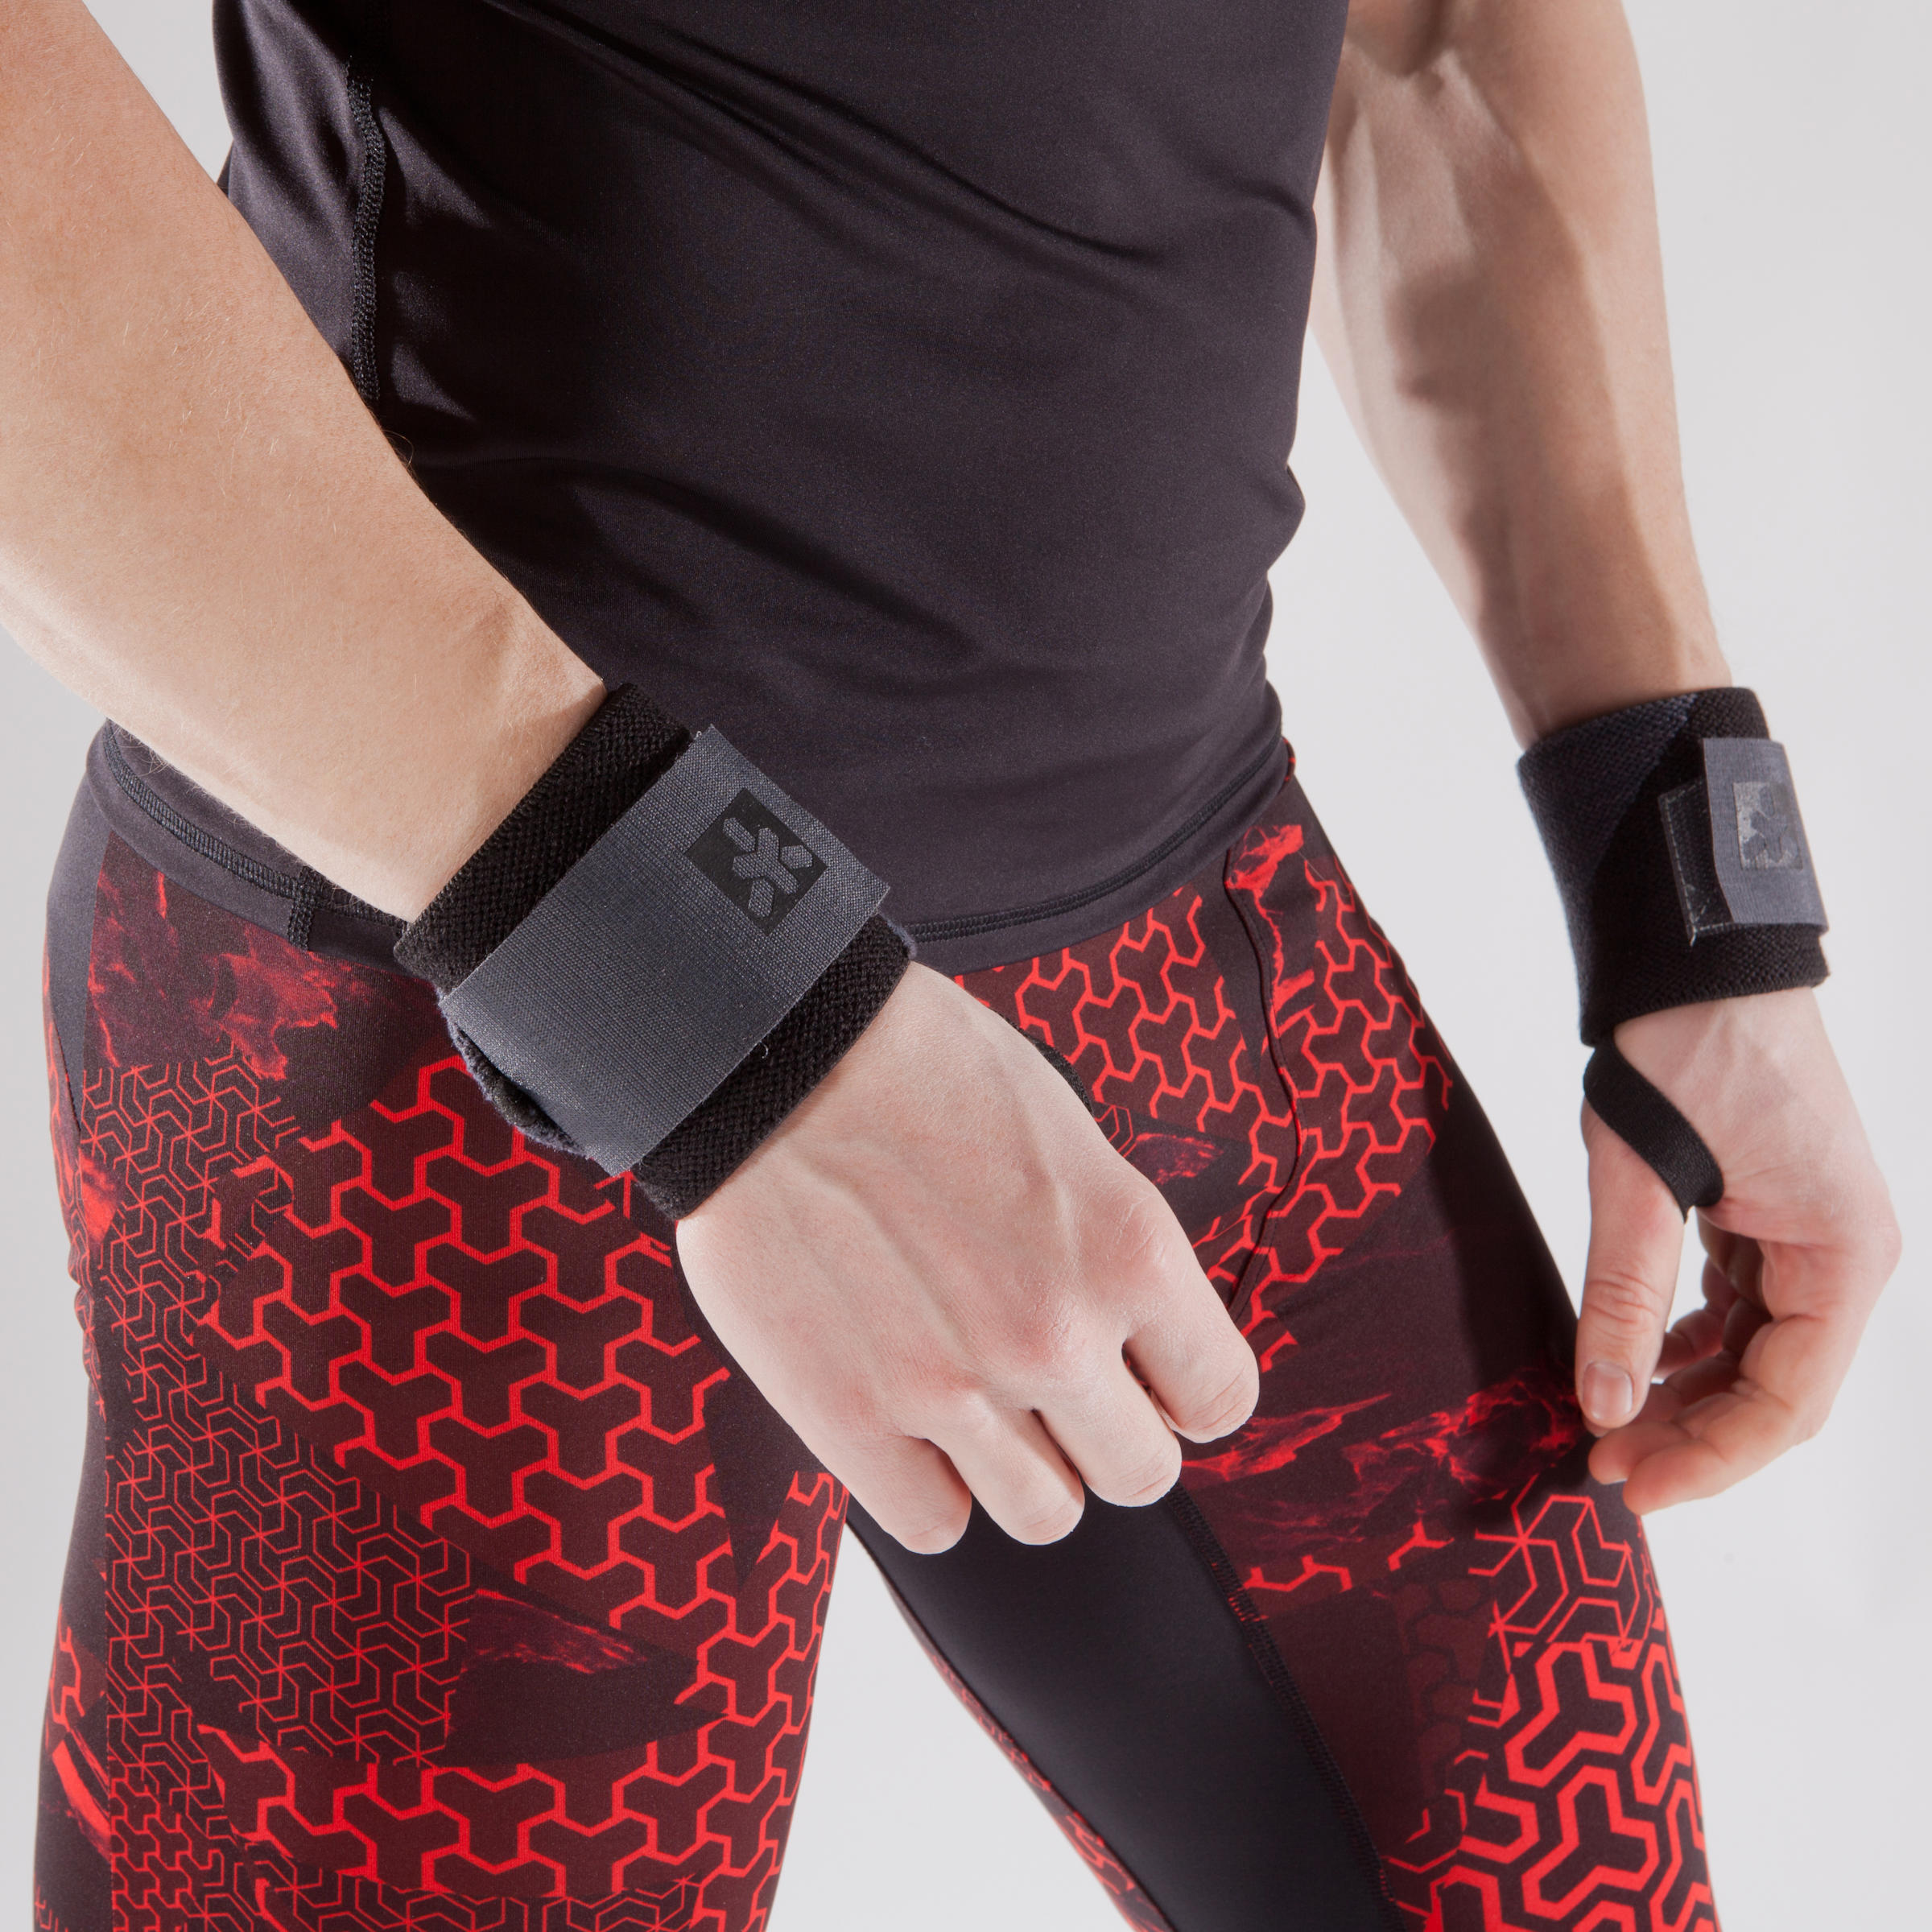 Weight Training Protection Wrist Wraps with Rip-Tab Cuff - Pink